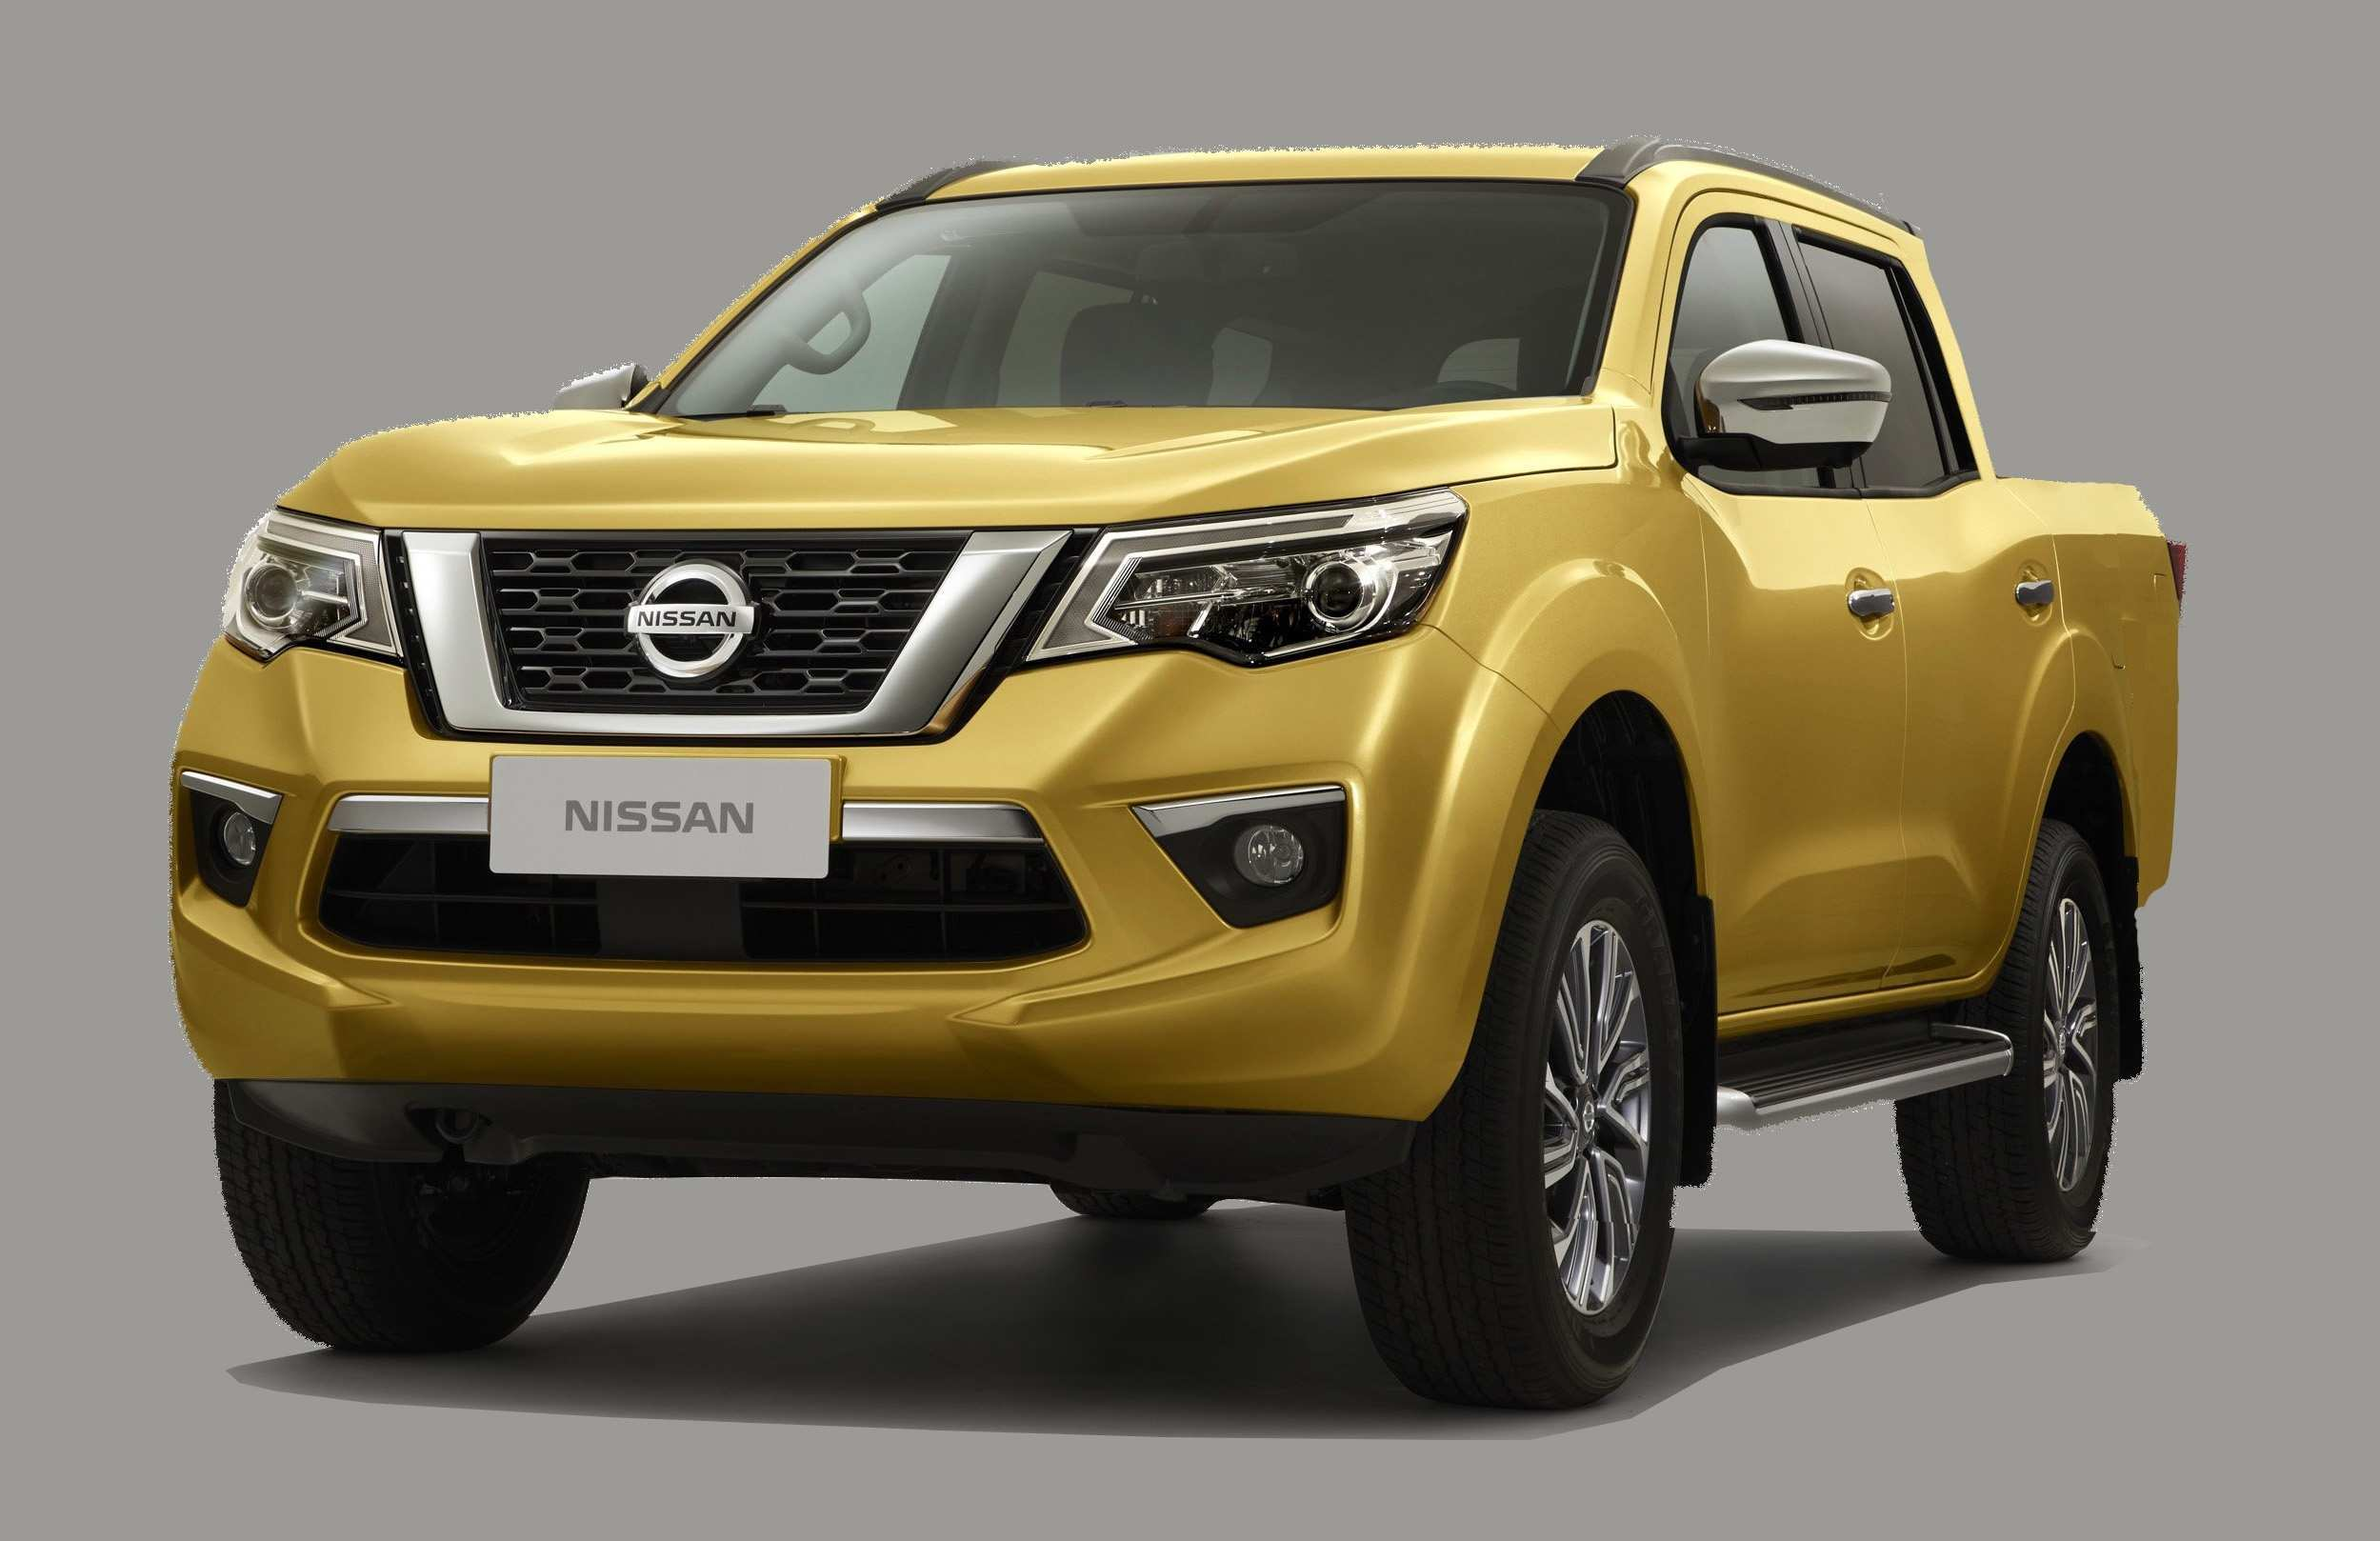 14 All New 2020 Nissan Navara Images